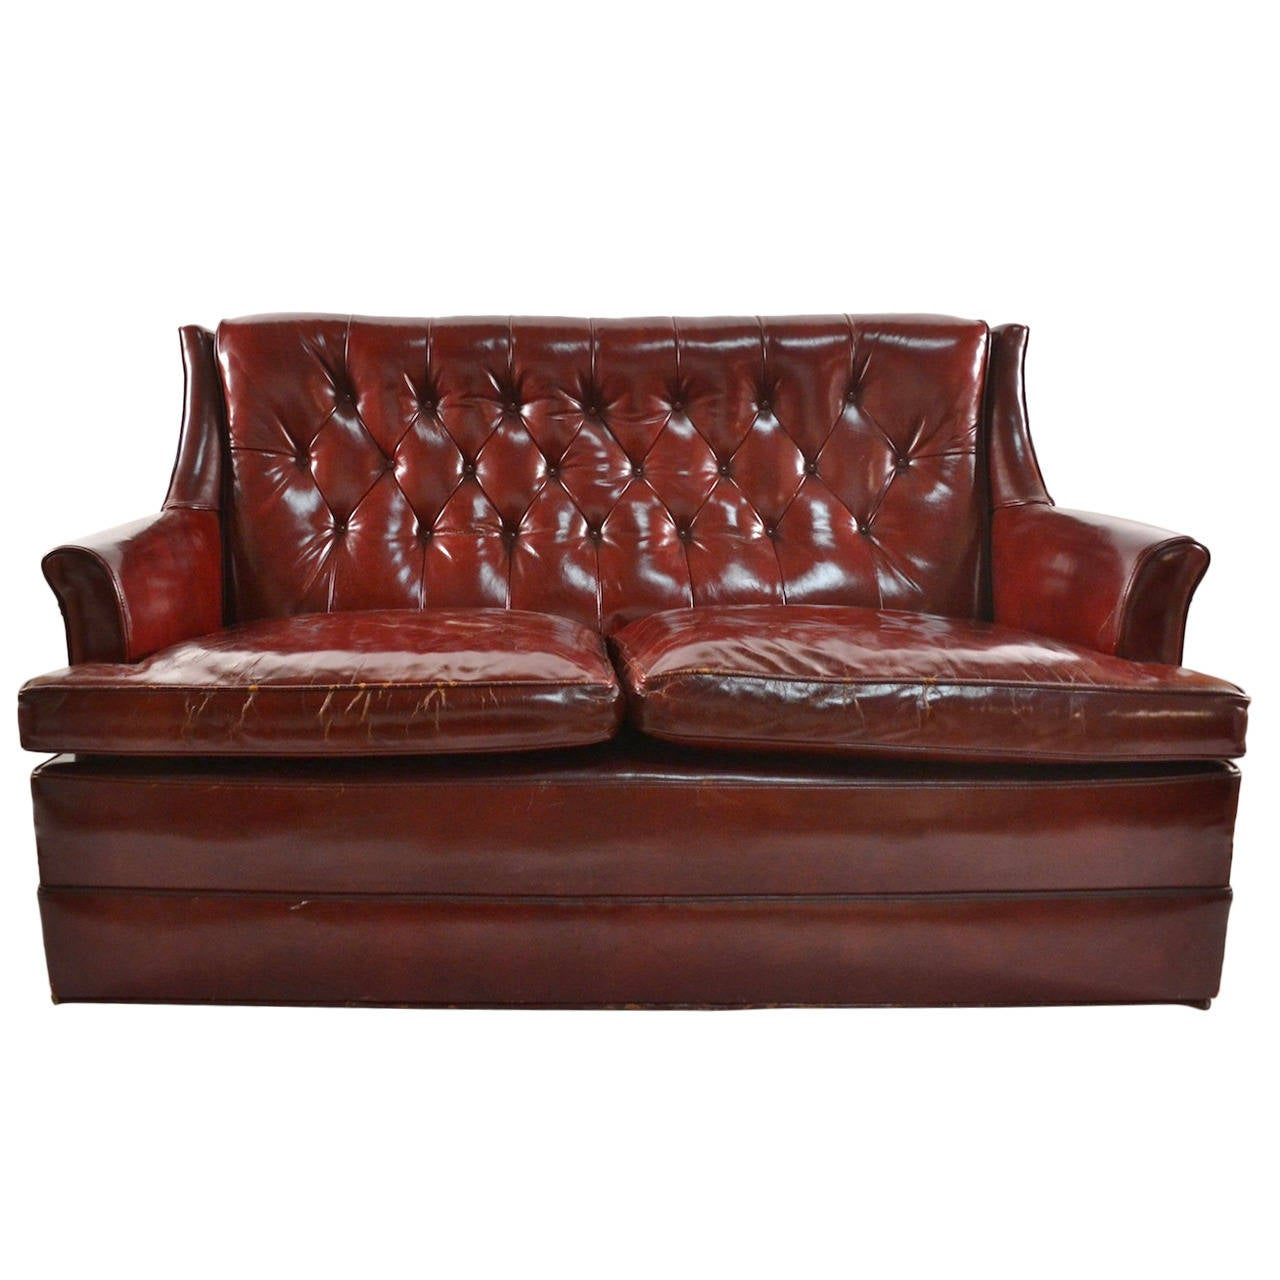 Vintage Leather Love Seat Sofa With Button Tufted Back At 1stdibs